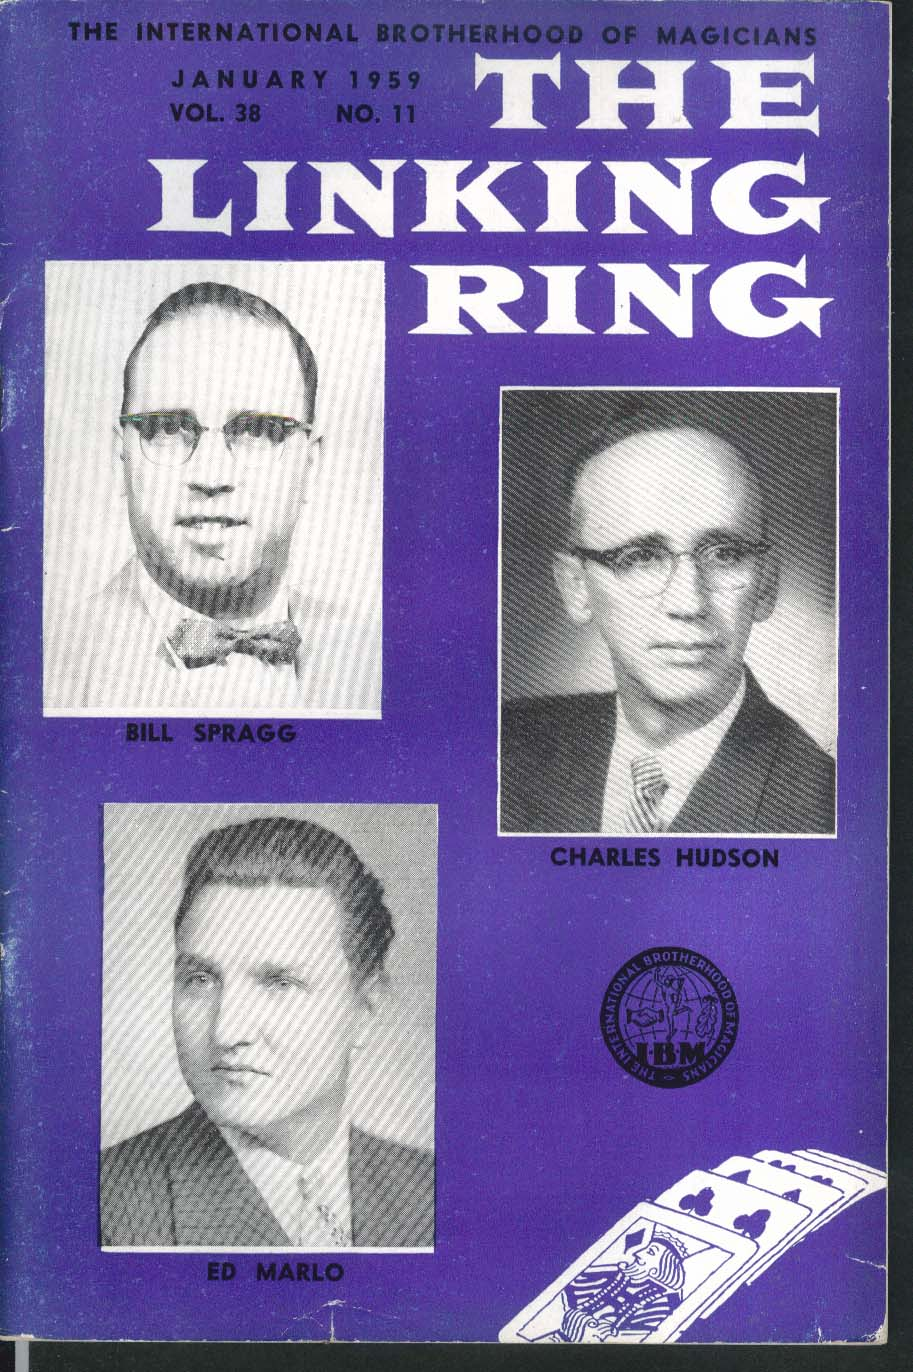 LINKING RING Bill Spragg Charles Hudson Ed Marlo 1 1959